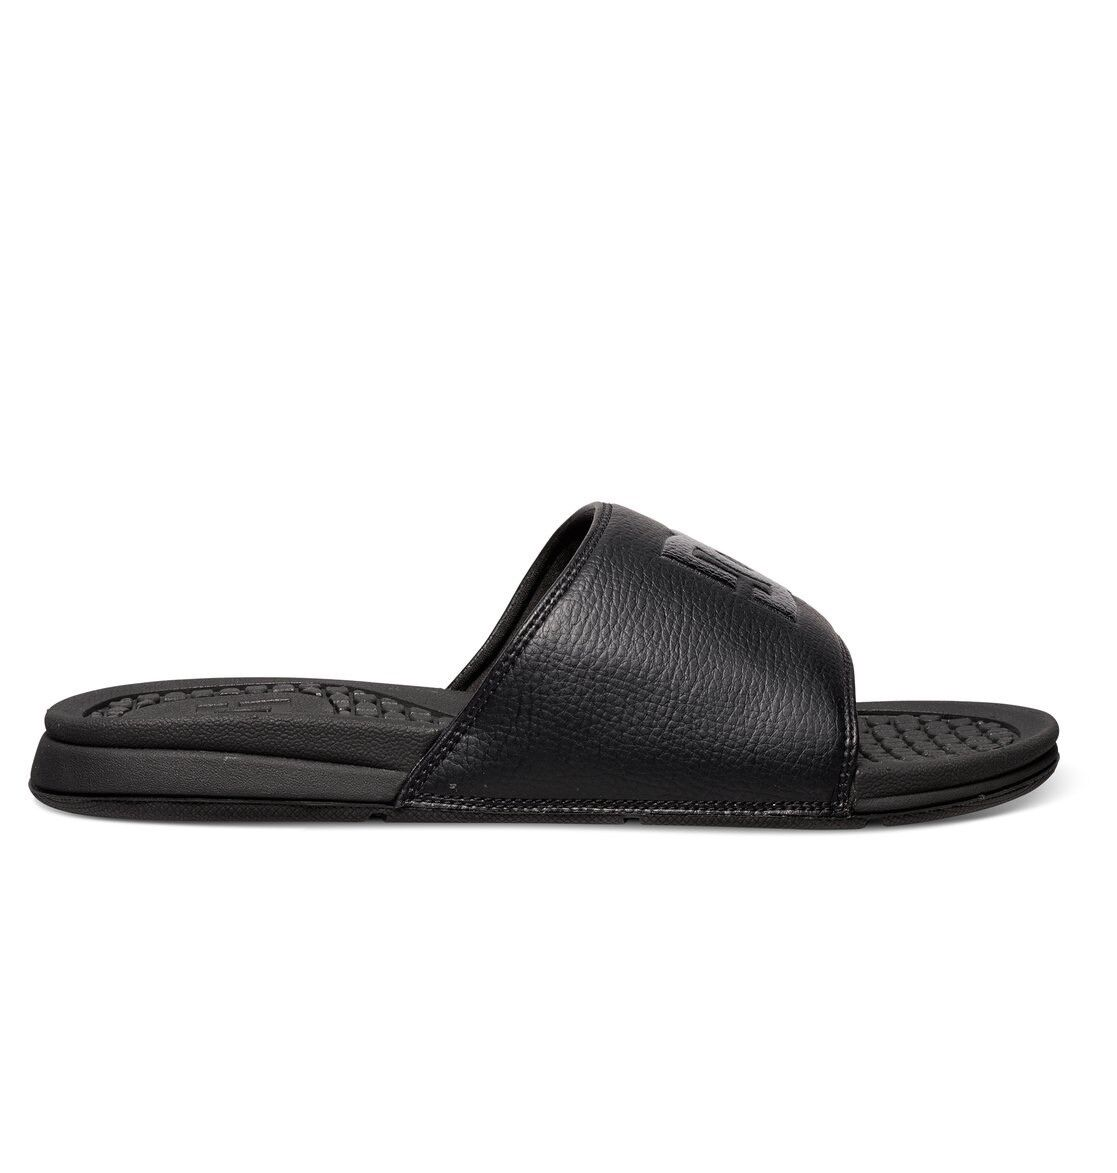 DC shoes Bolsa Slider Sandals BLACK BLACK